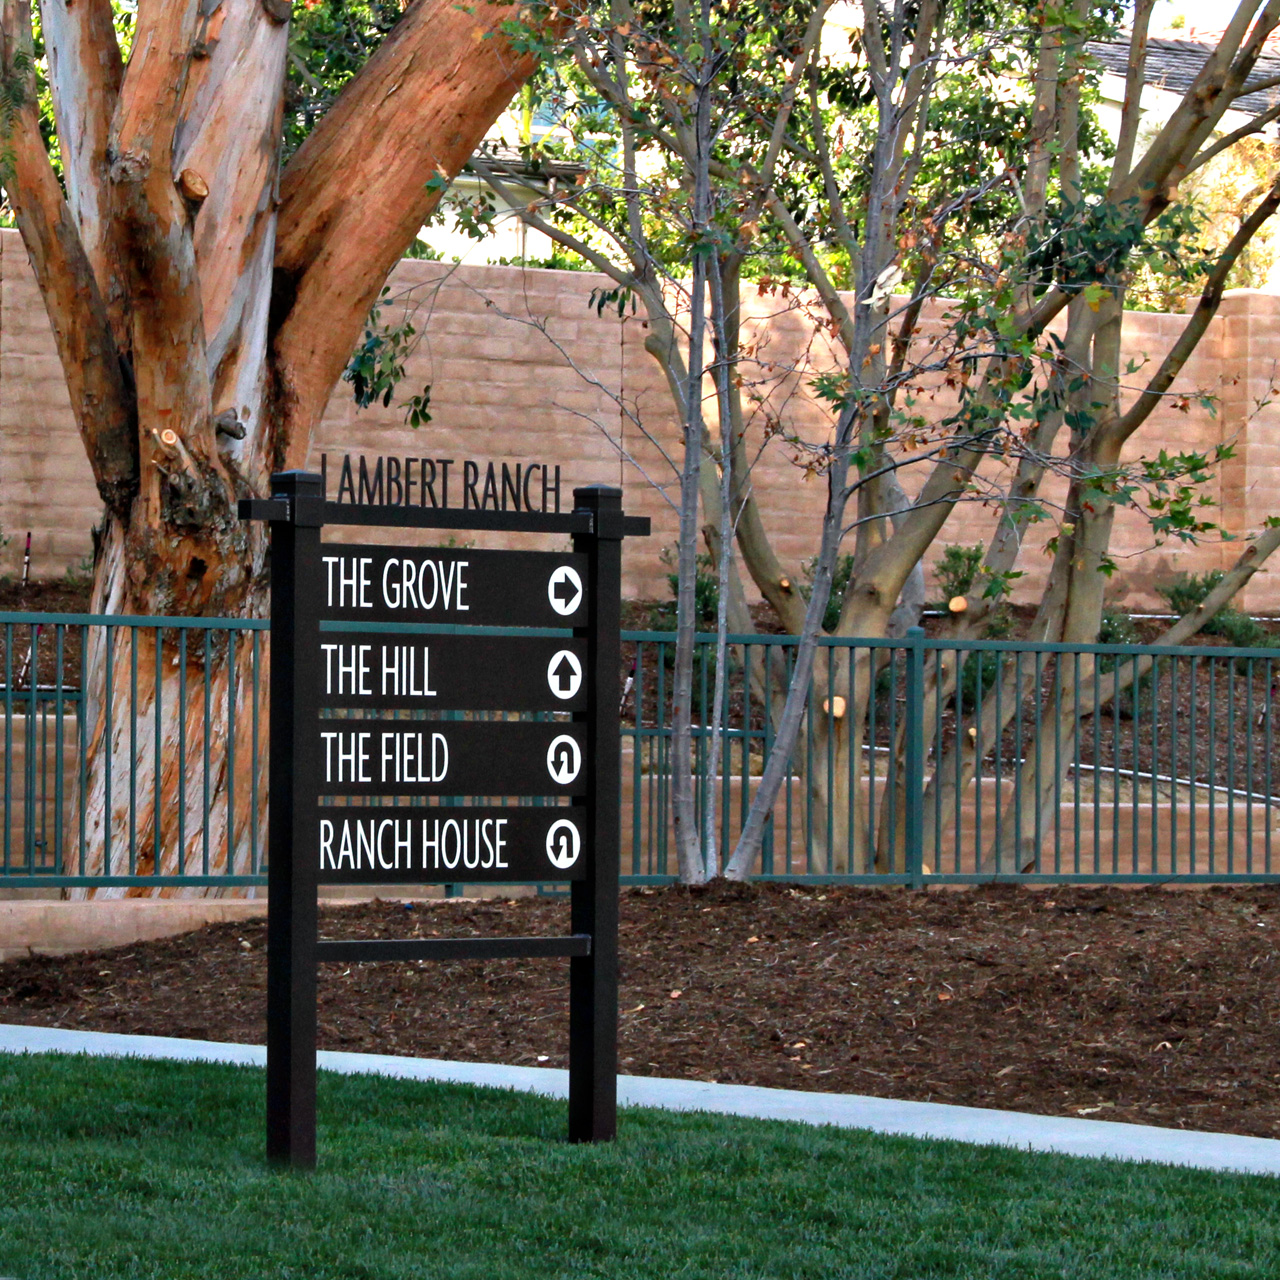 Signage @ Lambert Ranch in Irvine, CA April 29th, 2012